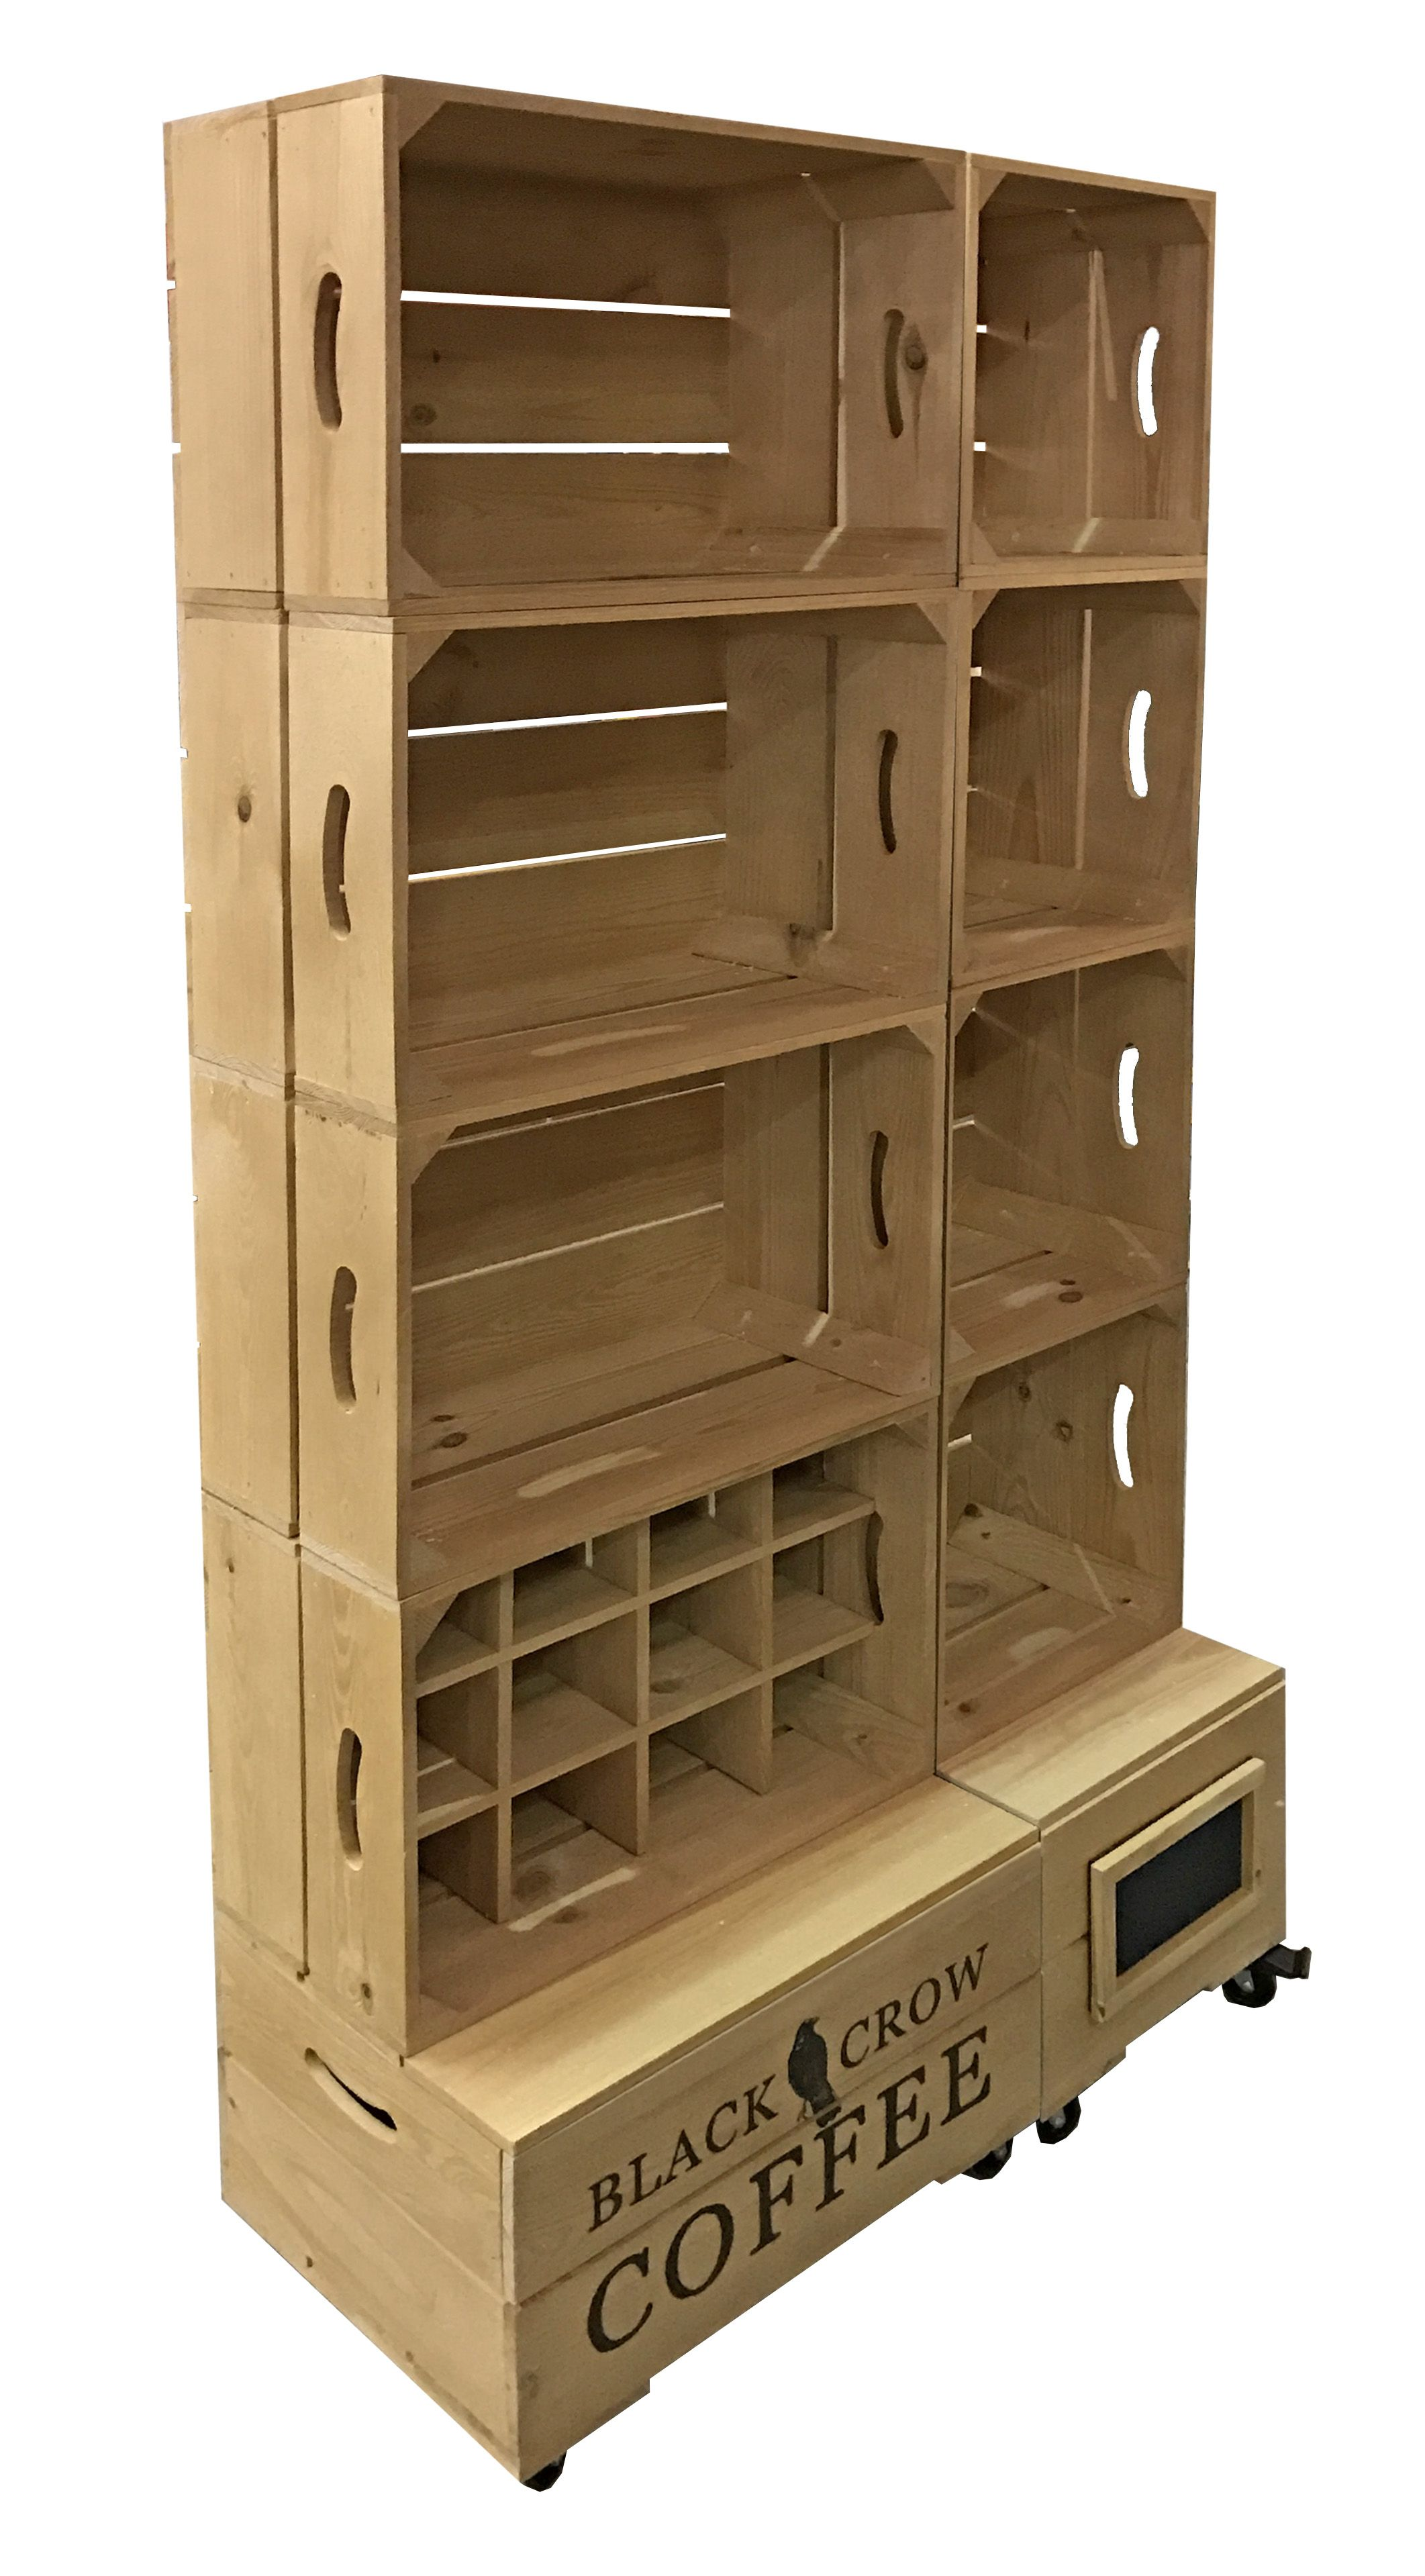 Branded Wooden Crates For Retail Display And Point Of Sale Apple